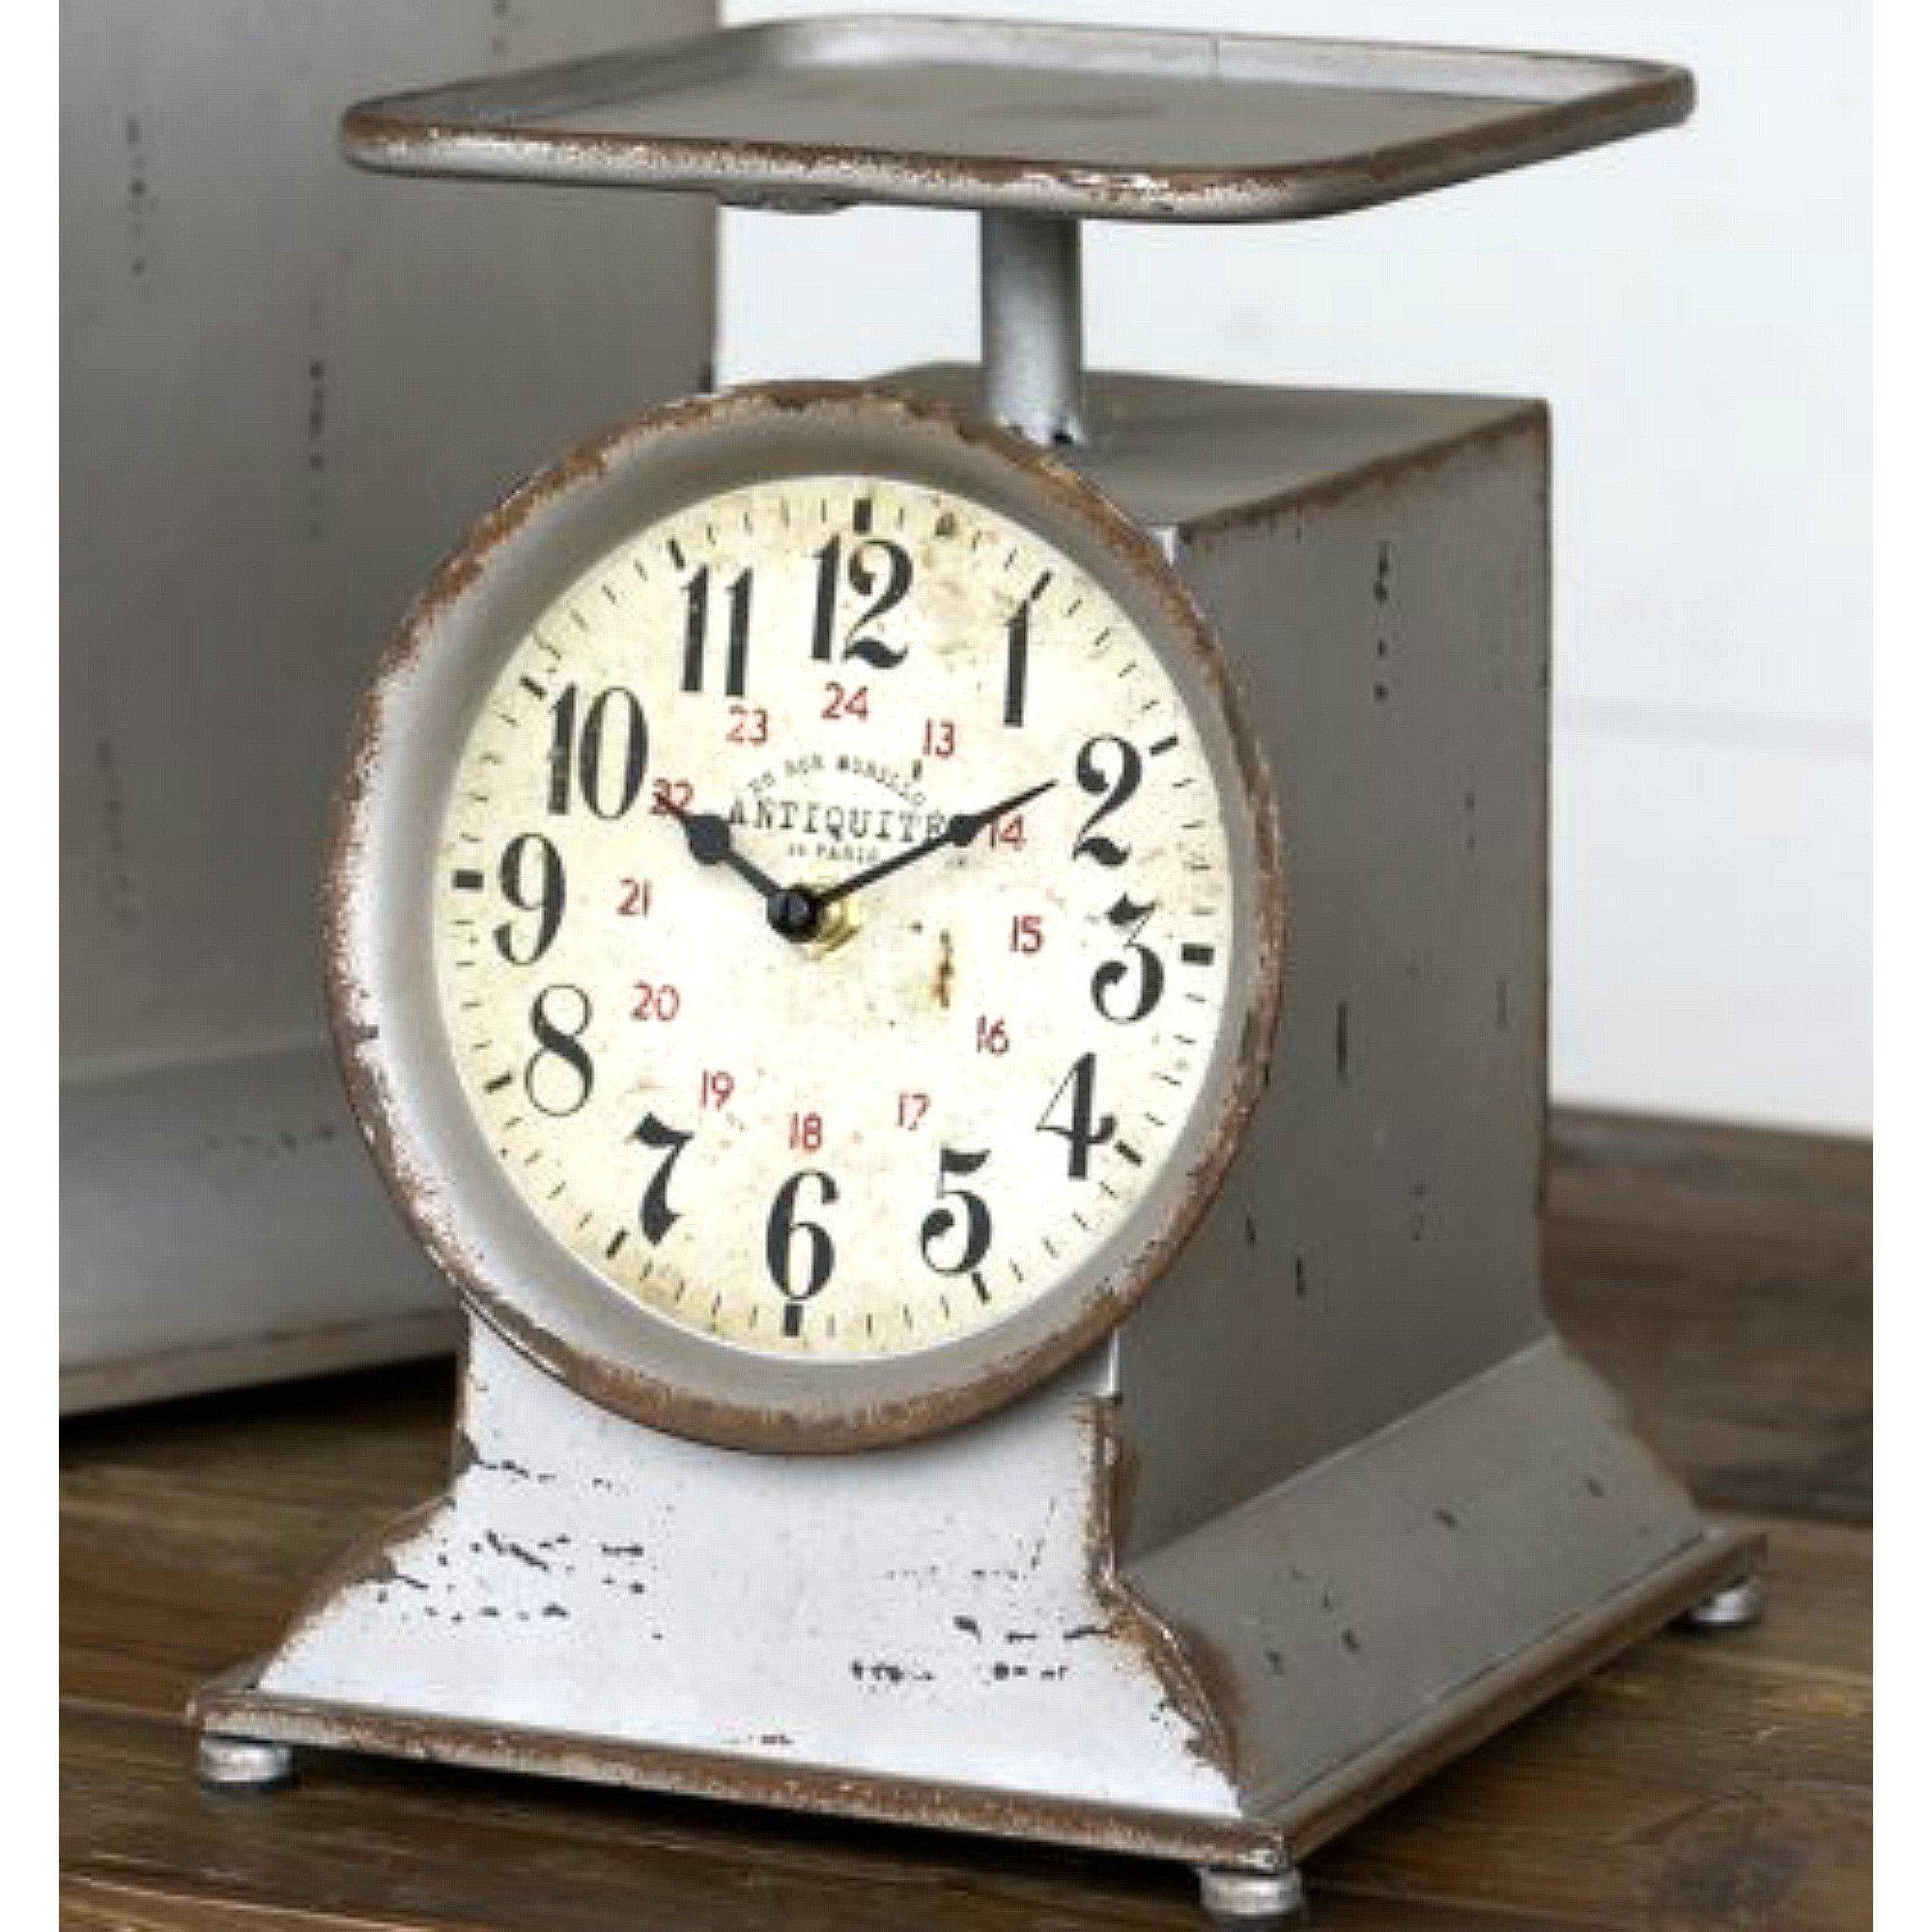 Grocery Scale Table Clock-Decor-A Cottage in the City